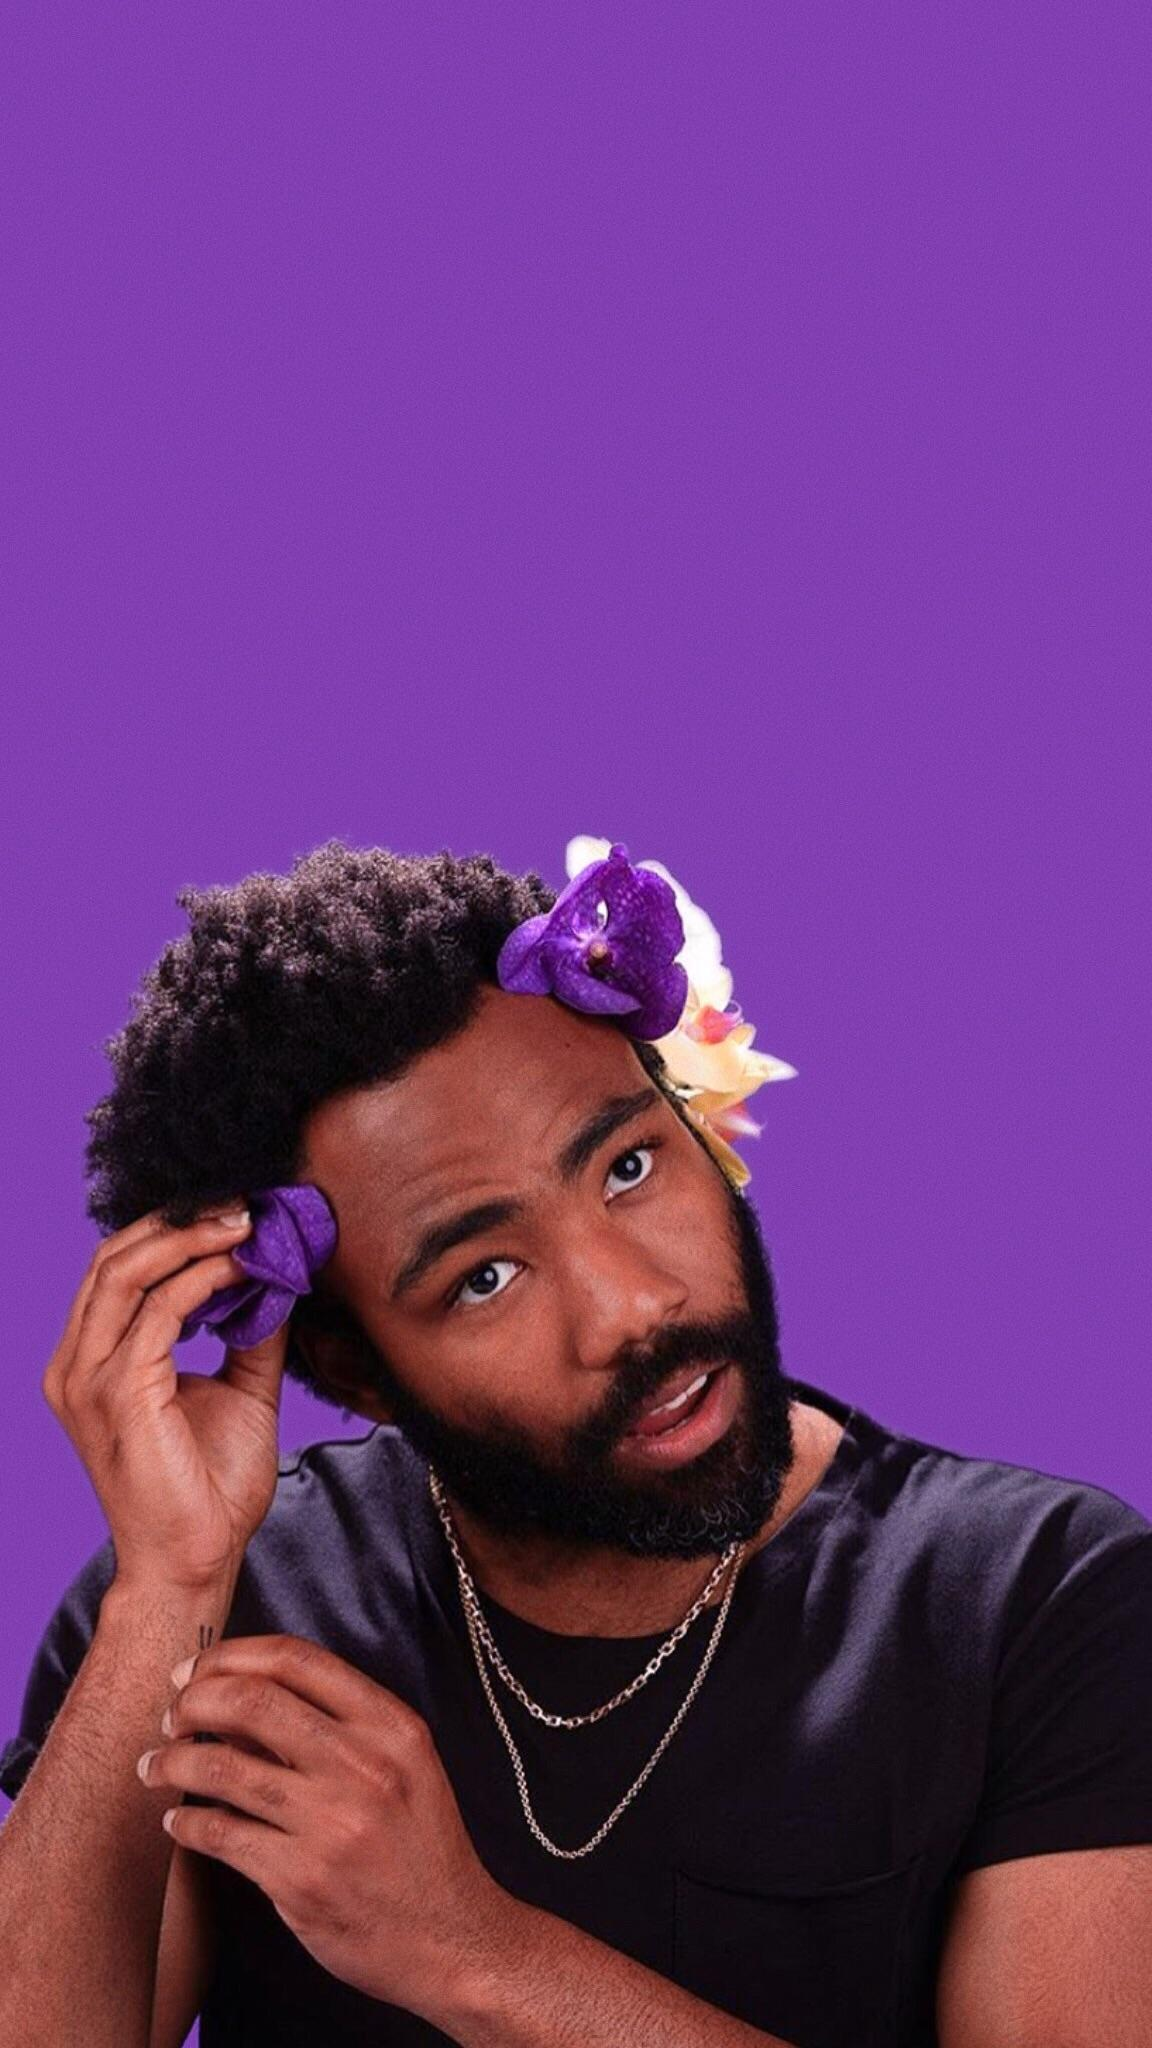 1152x2048 - Donald Glover Wallpapers 1